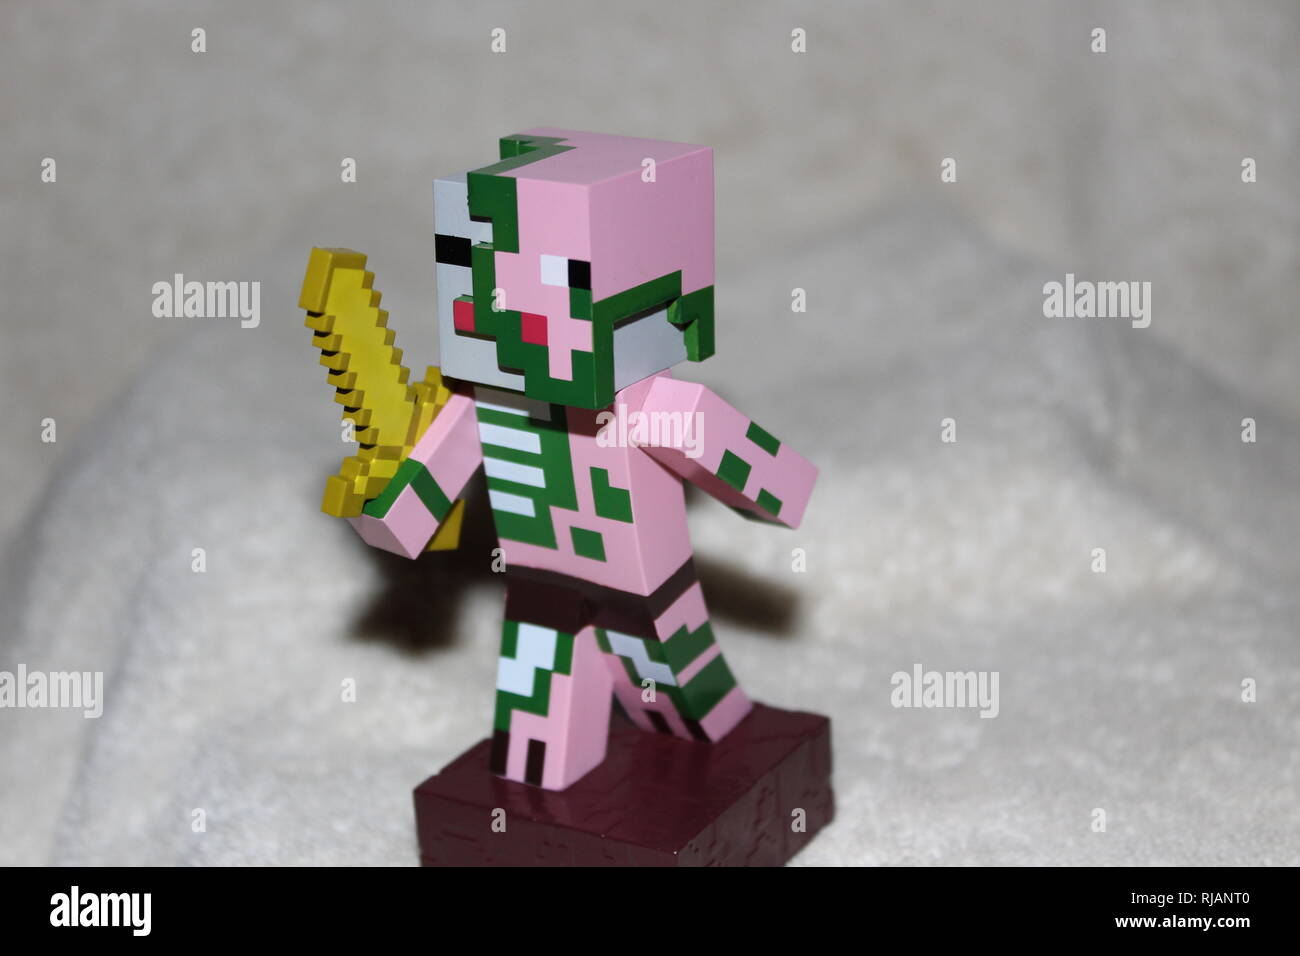 Minecraft Toy Character Still Life - Stock Image